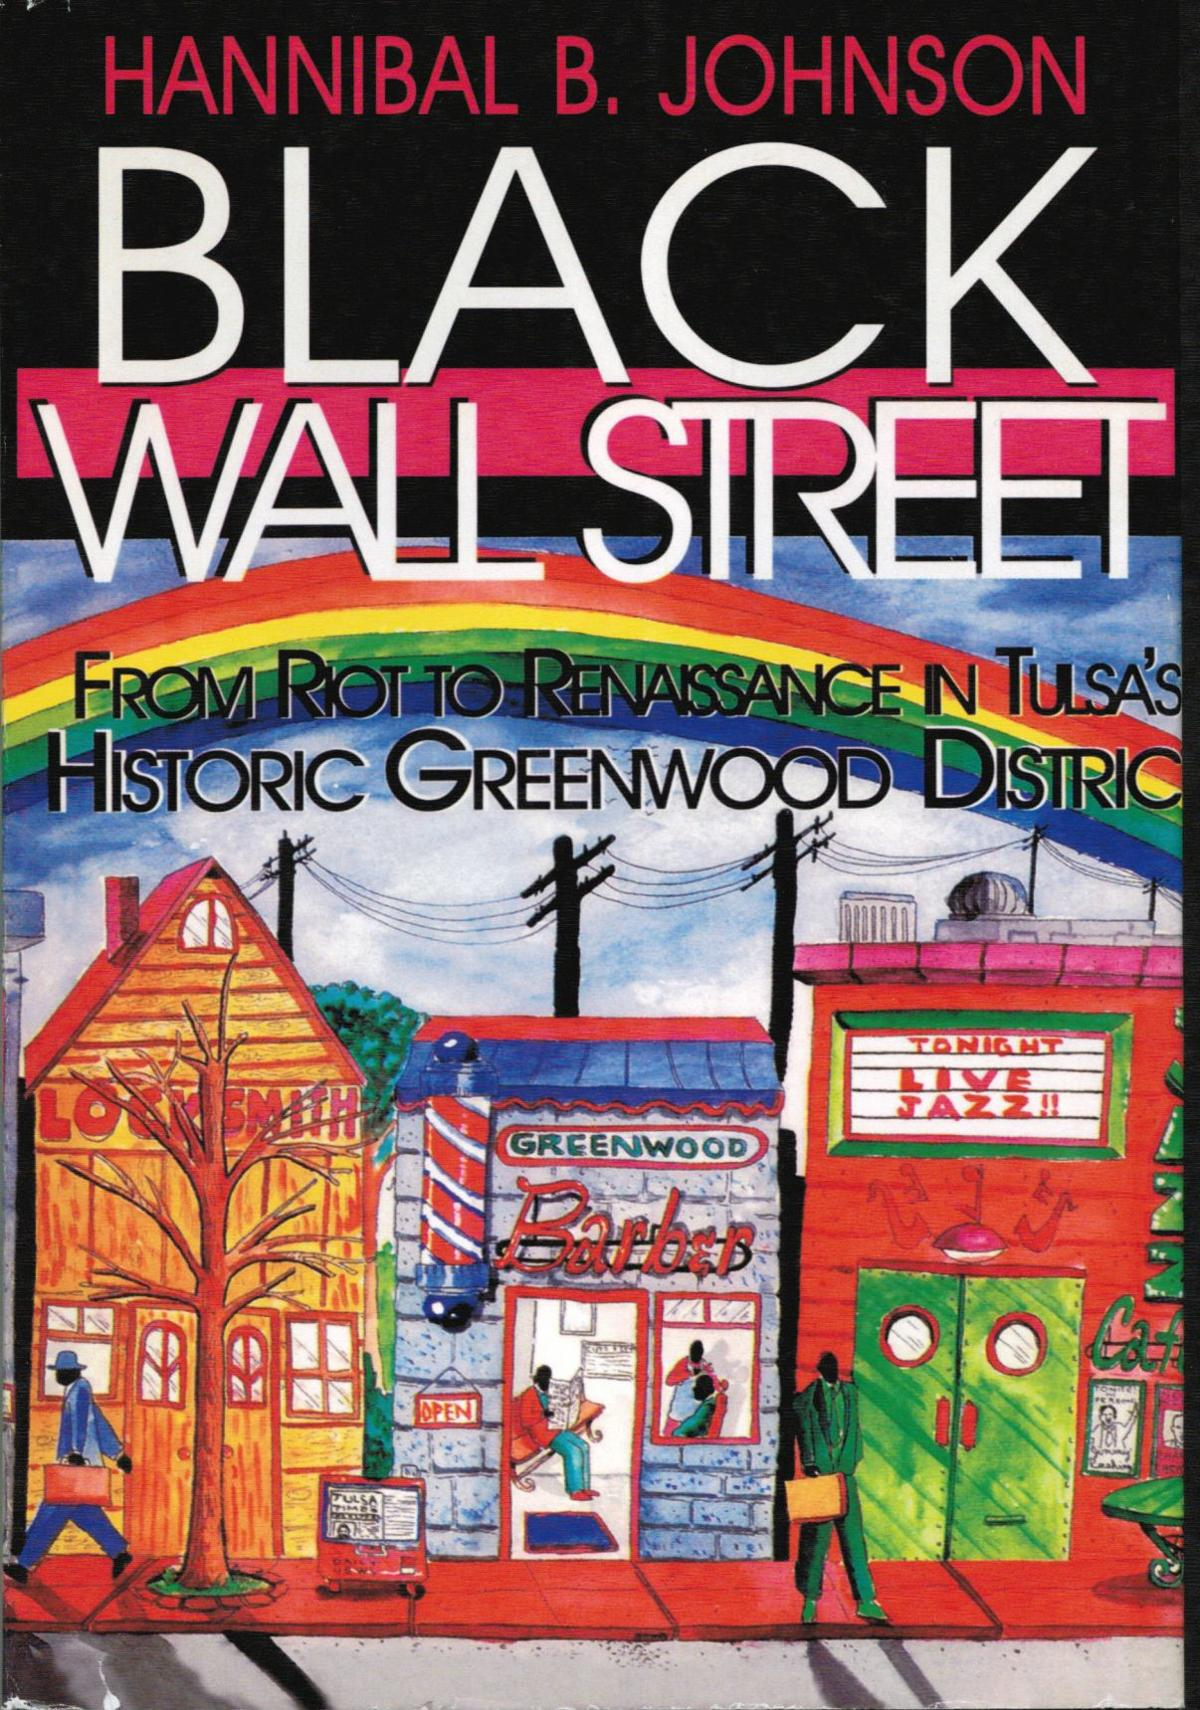 Black Wall Street, by Hannibal B. Johnson